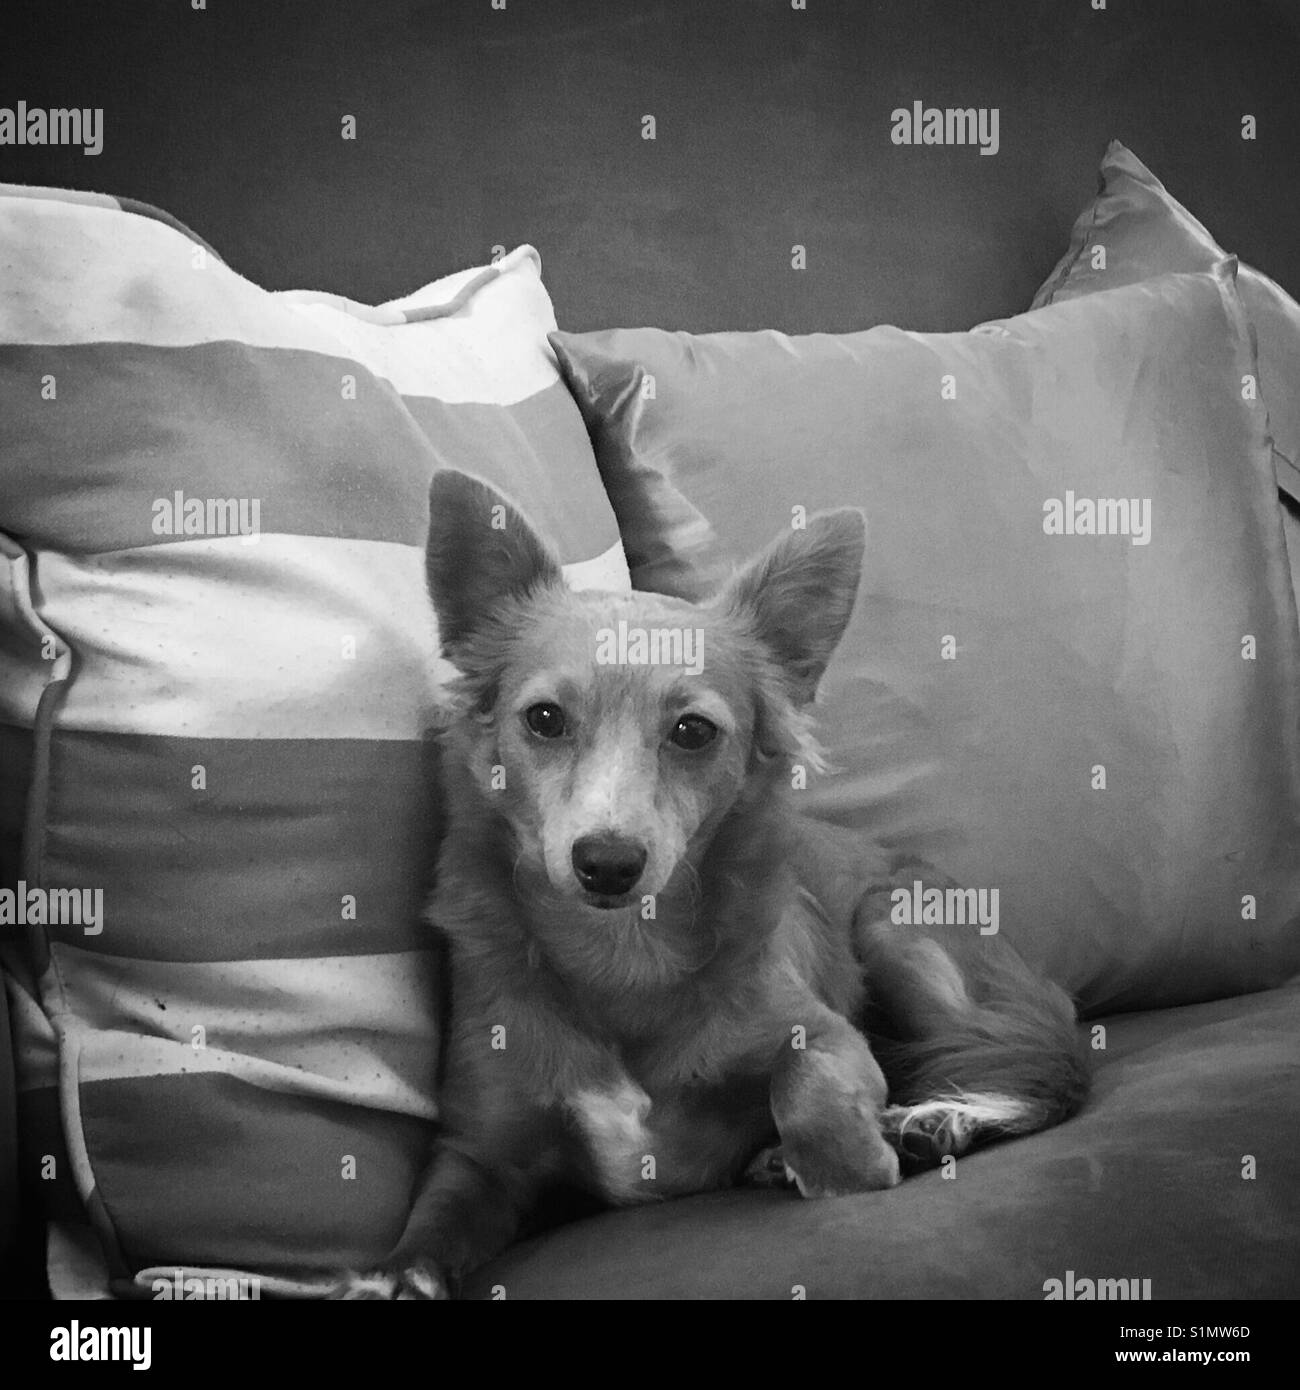 Dog on couch - Stock Image